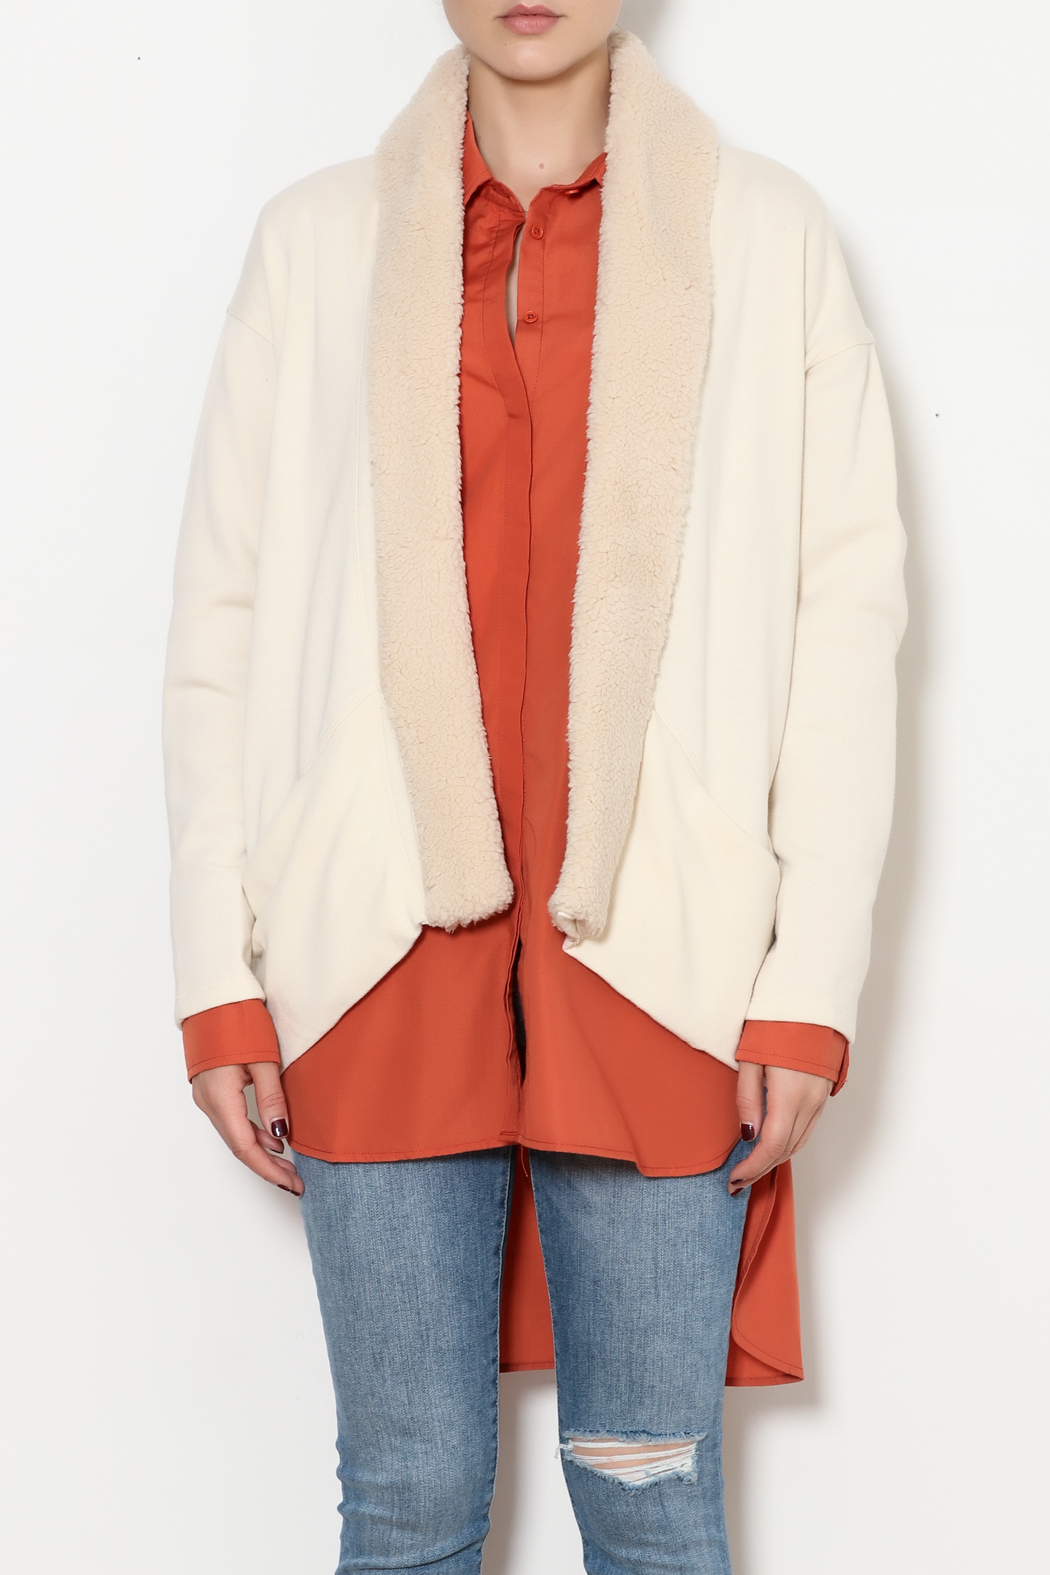 z supply Sherpa Cocoon Cardigan - Front Full Image